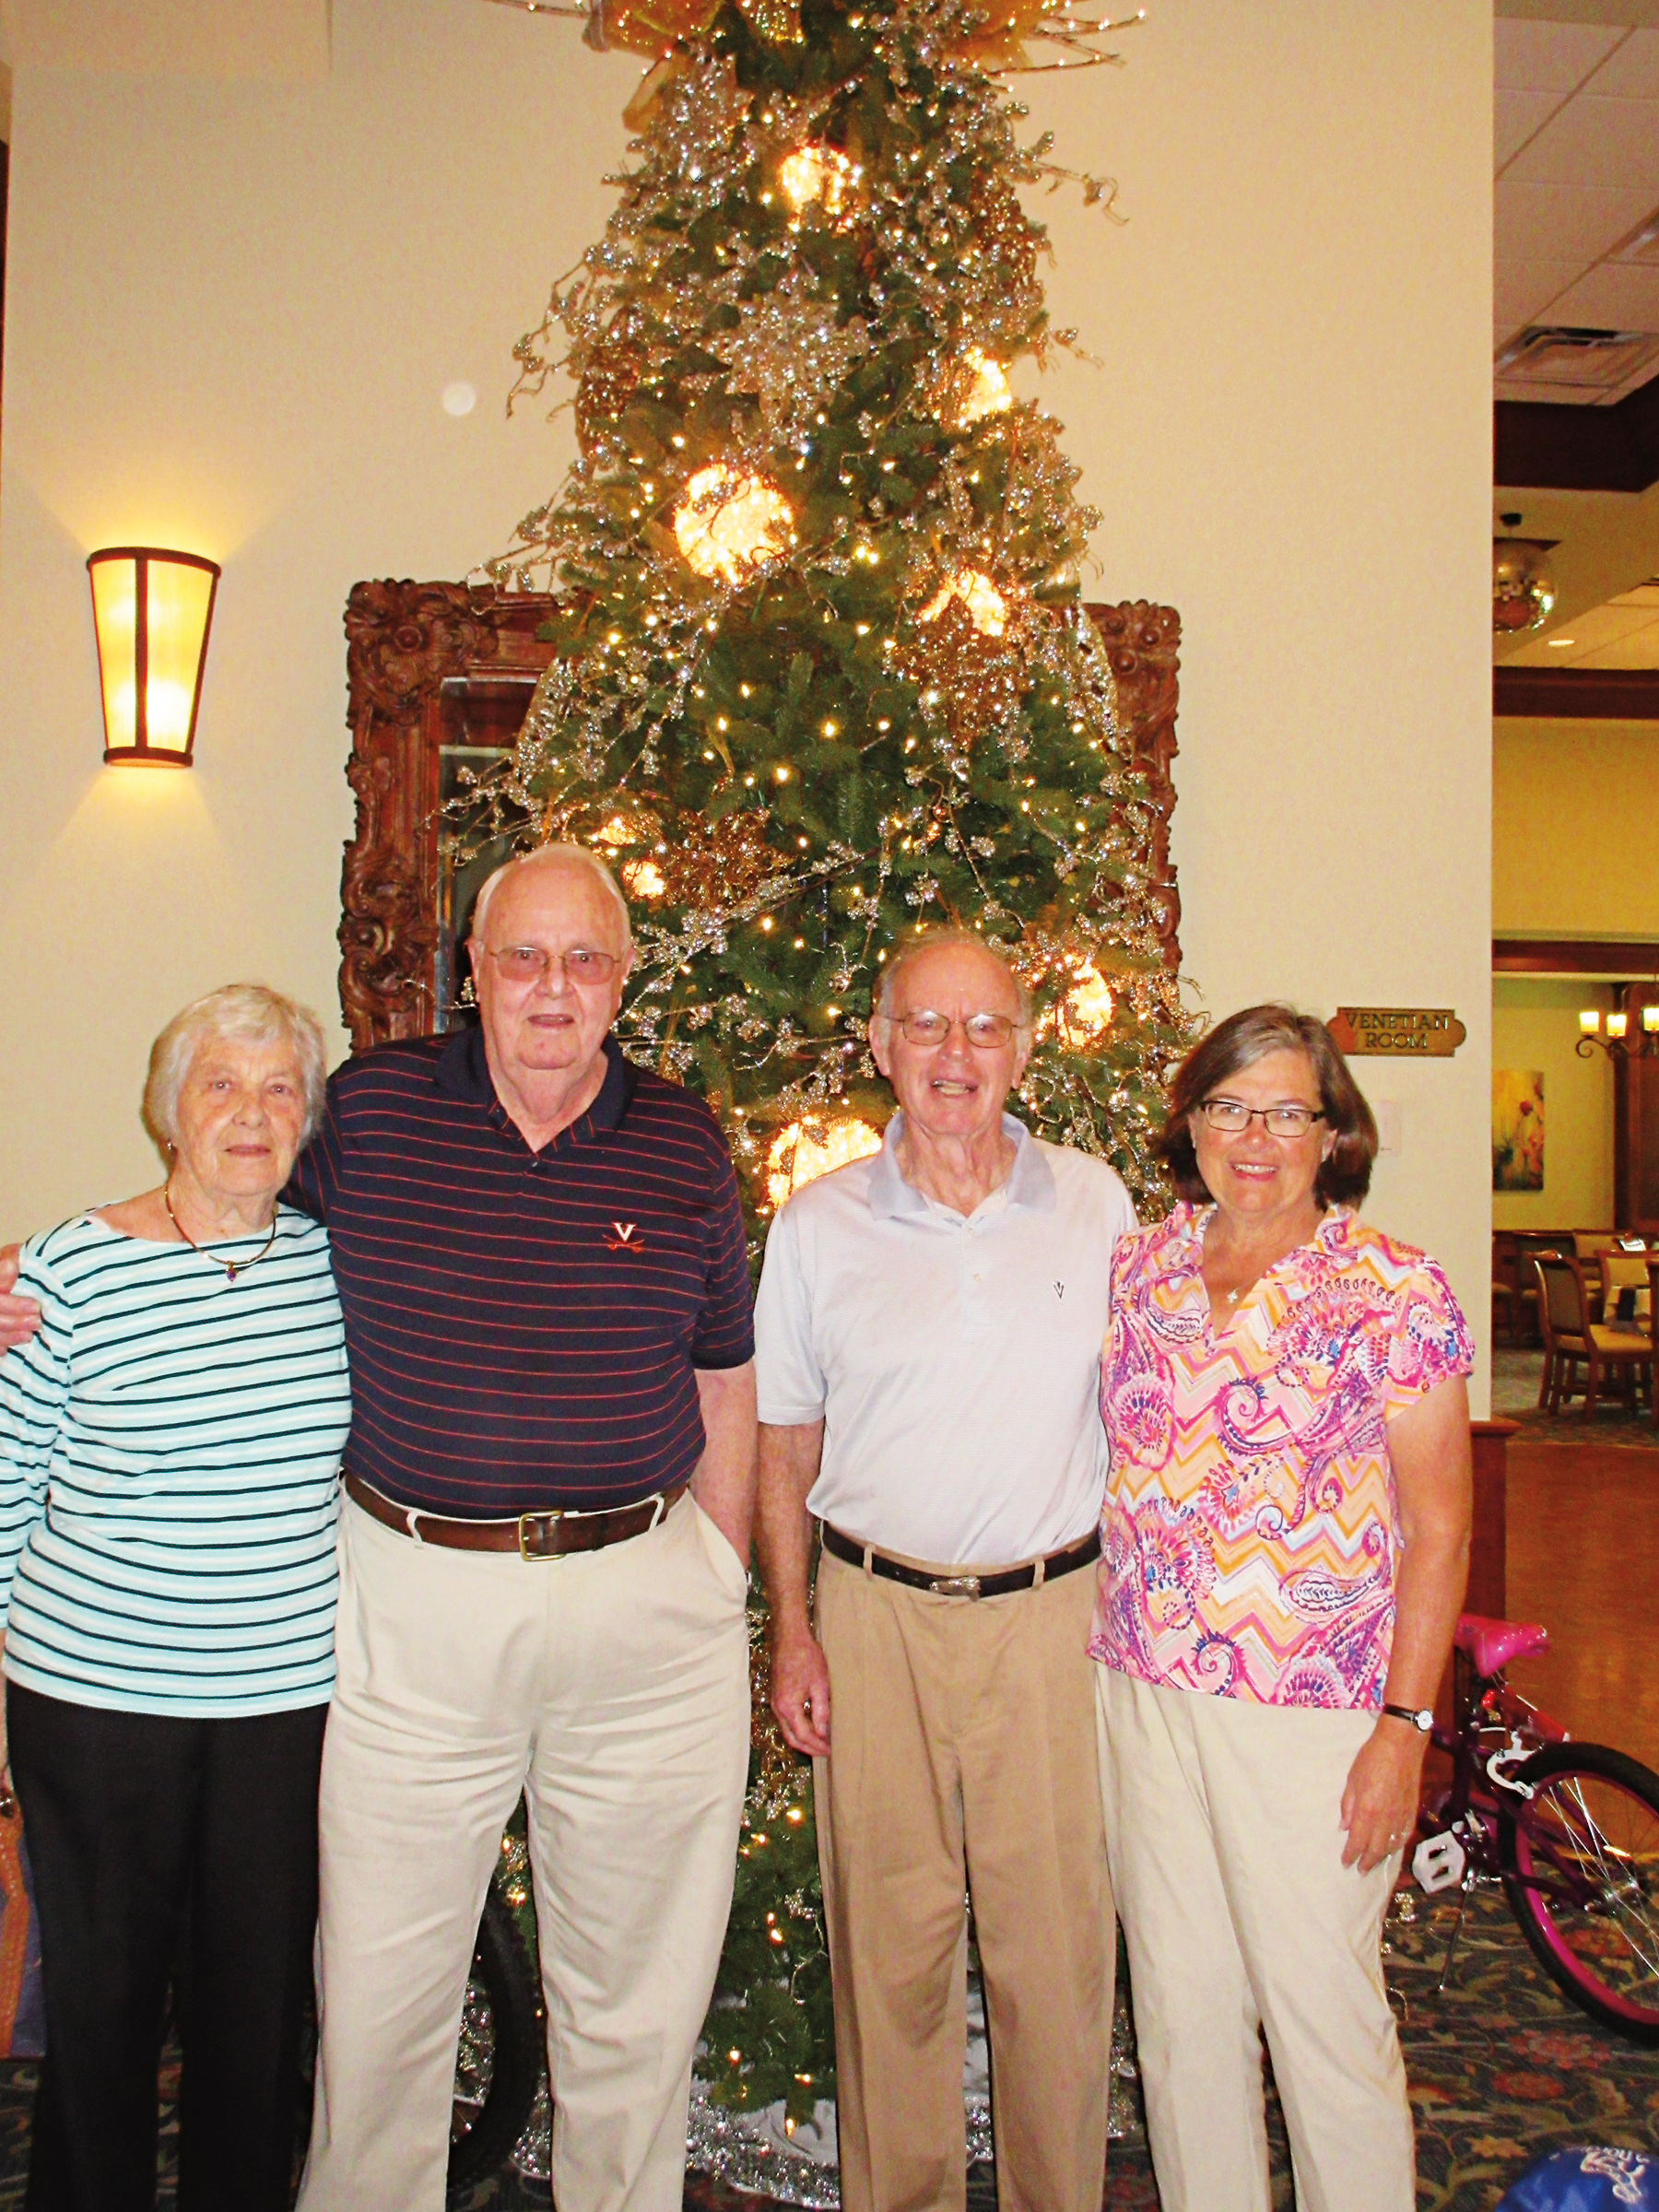 (L. to r.) Lou Sawyer, Dick Sawyer '48, Bill Matthews '61, and Marcia Matthews met for lunch in Venice, Fla.